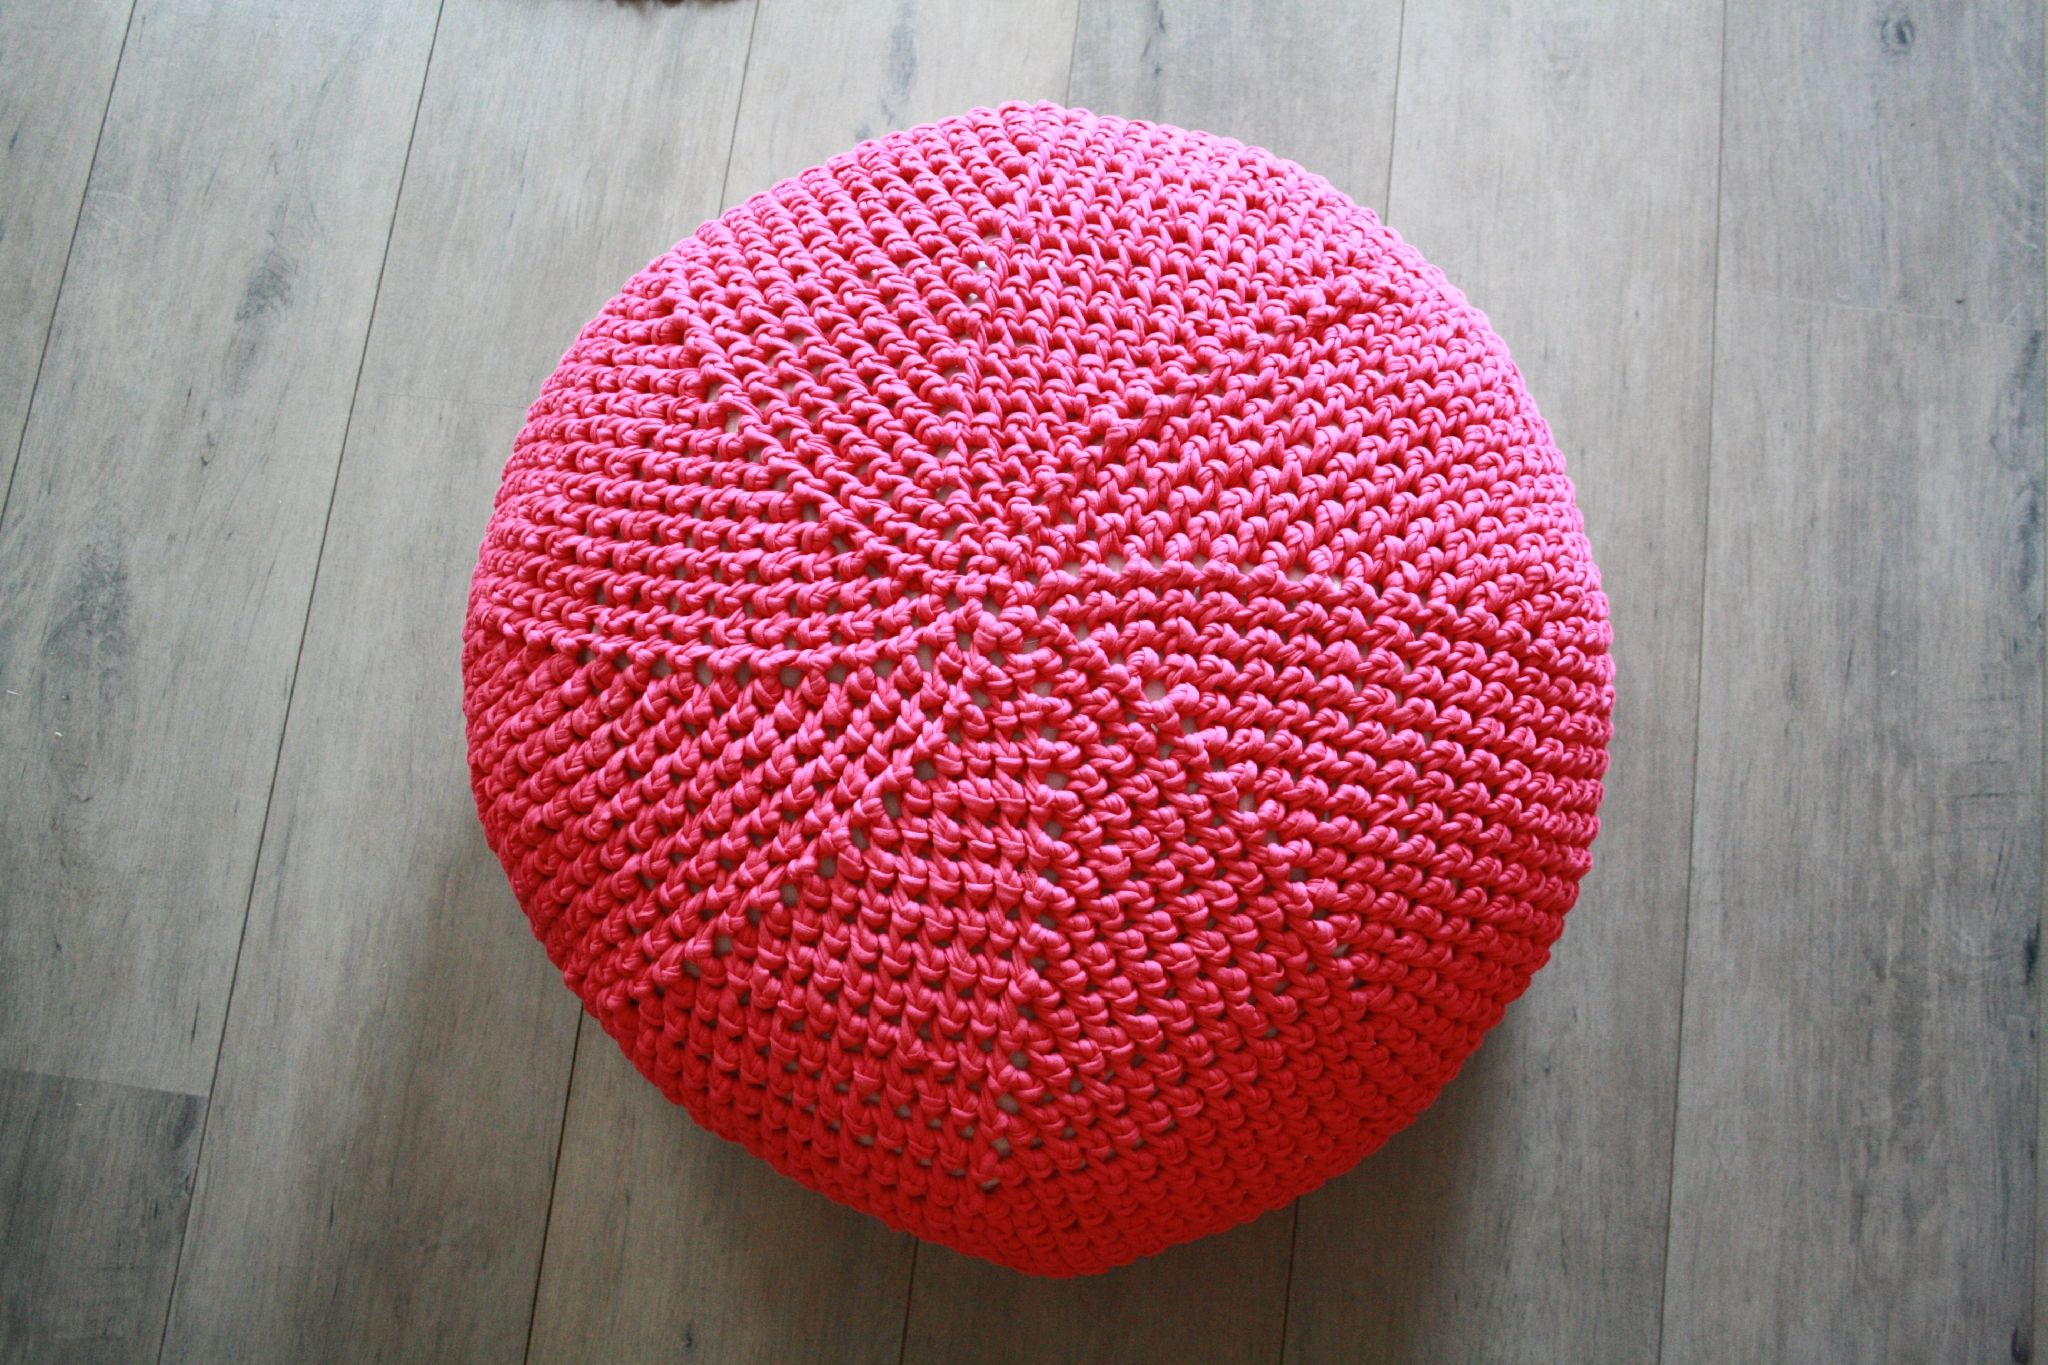 tuto en fran ais d 39 un pouf au crochet crochet pinterest crochet tricot and crochet pouf. Black Bedroom Furniture Sets. Home Design Ideas